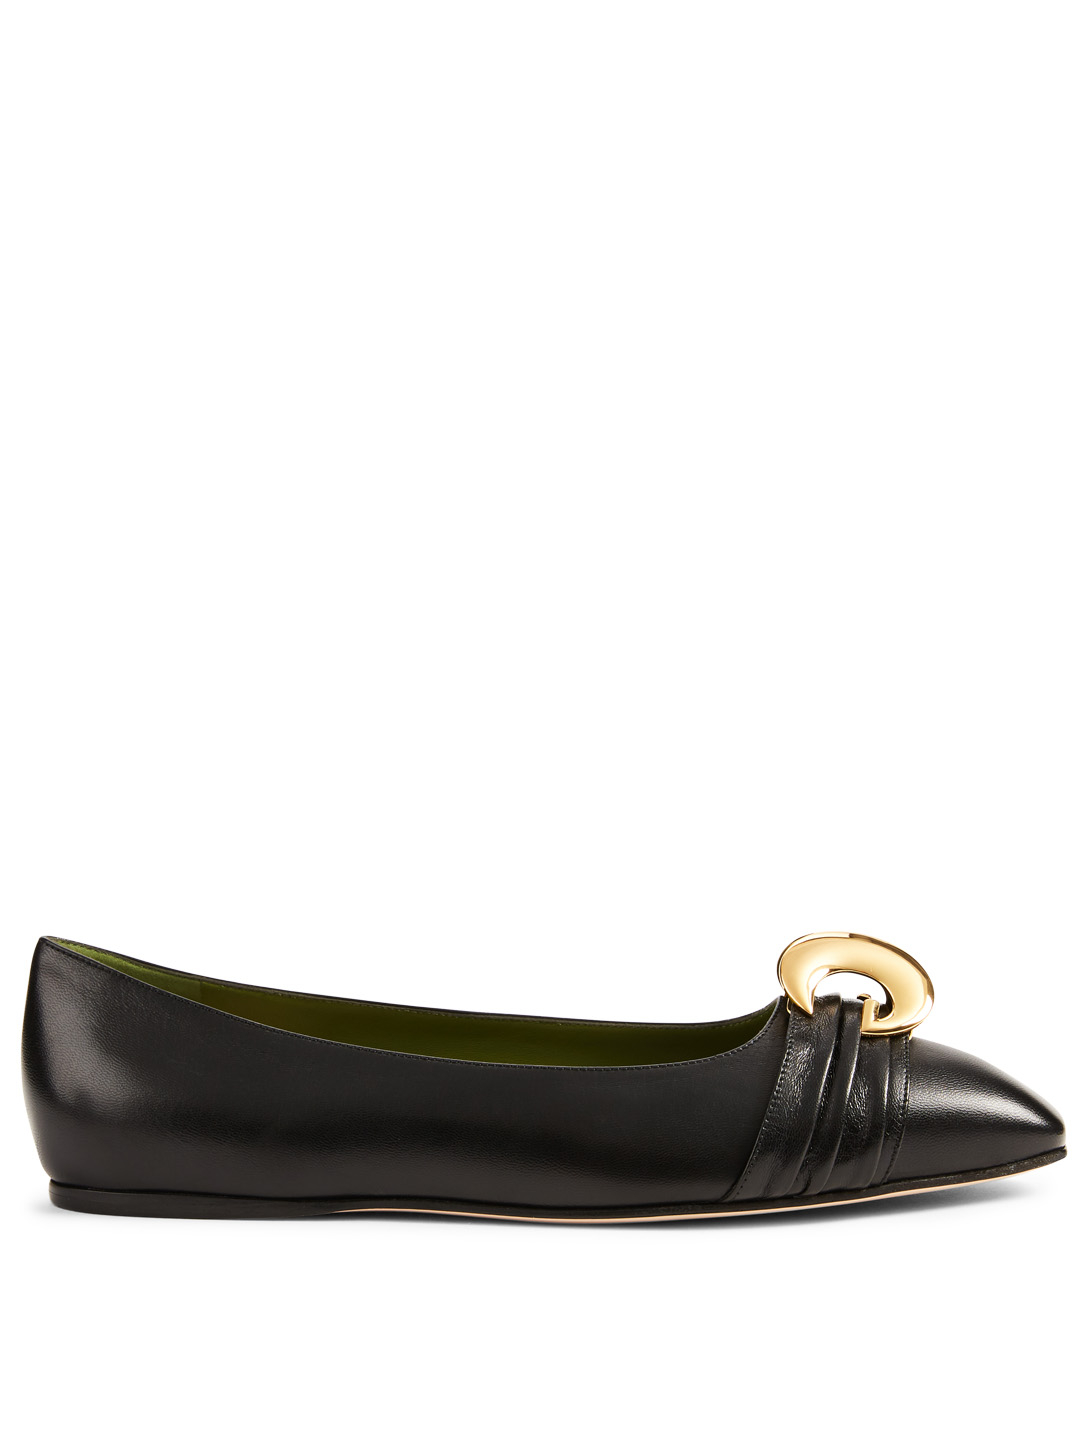 c5bb53ea0 GUCCI Leather Ballet Flats With Half Moon GG Women's Black ...